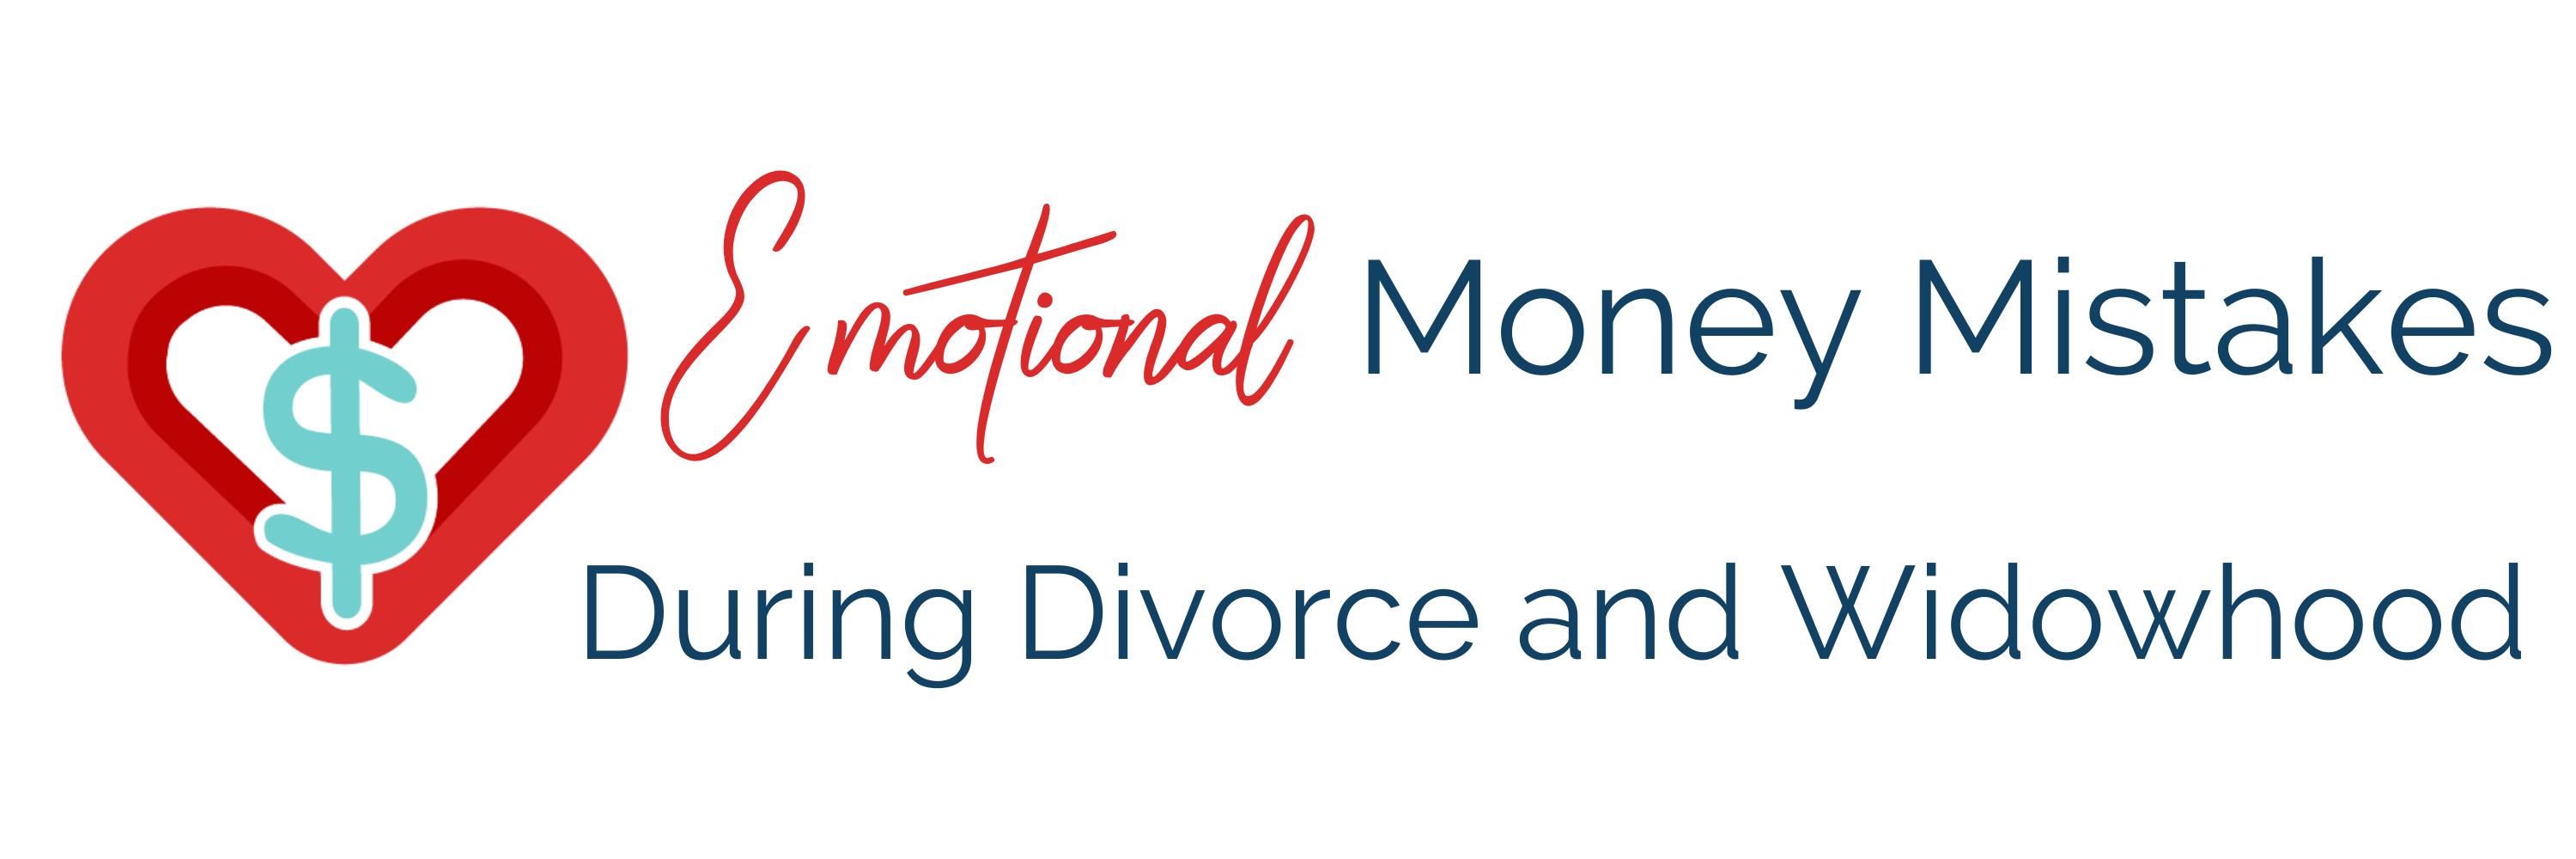 Emotional Money Mistakes During Divorce and Widowhood (1)